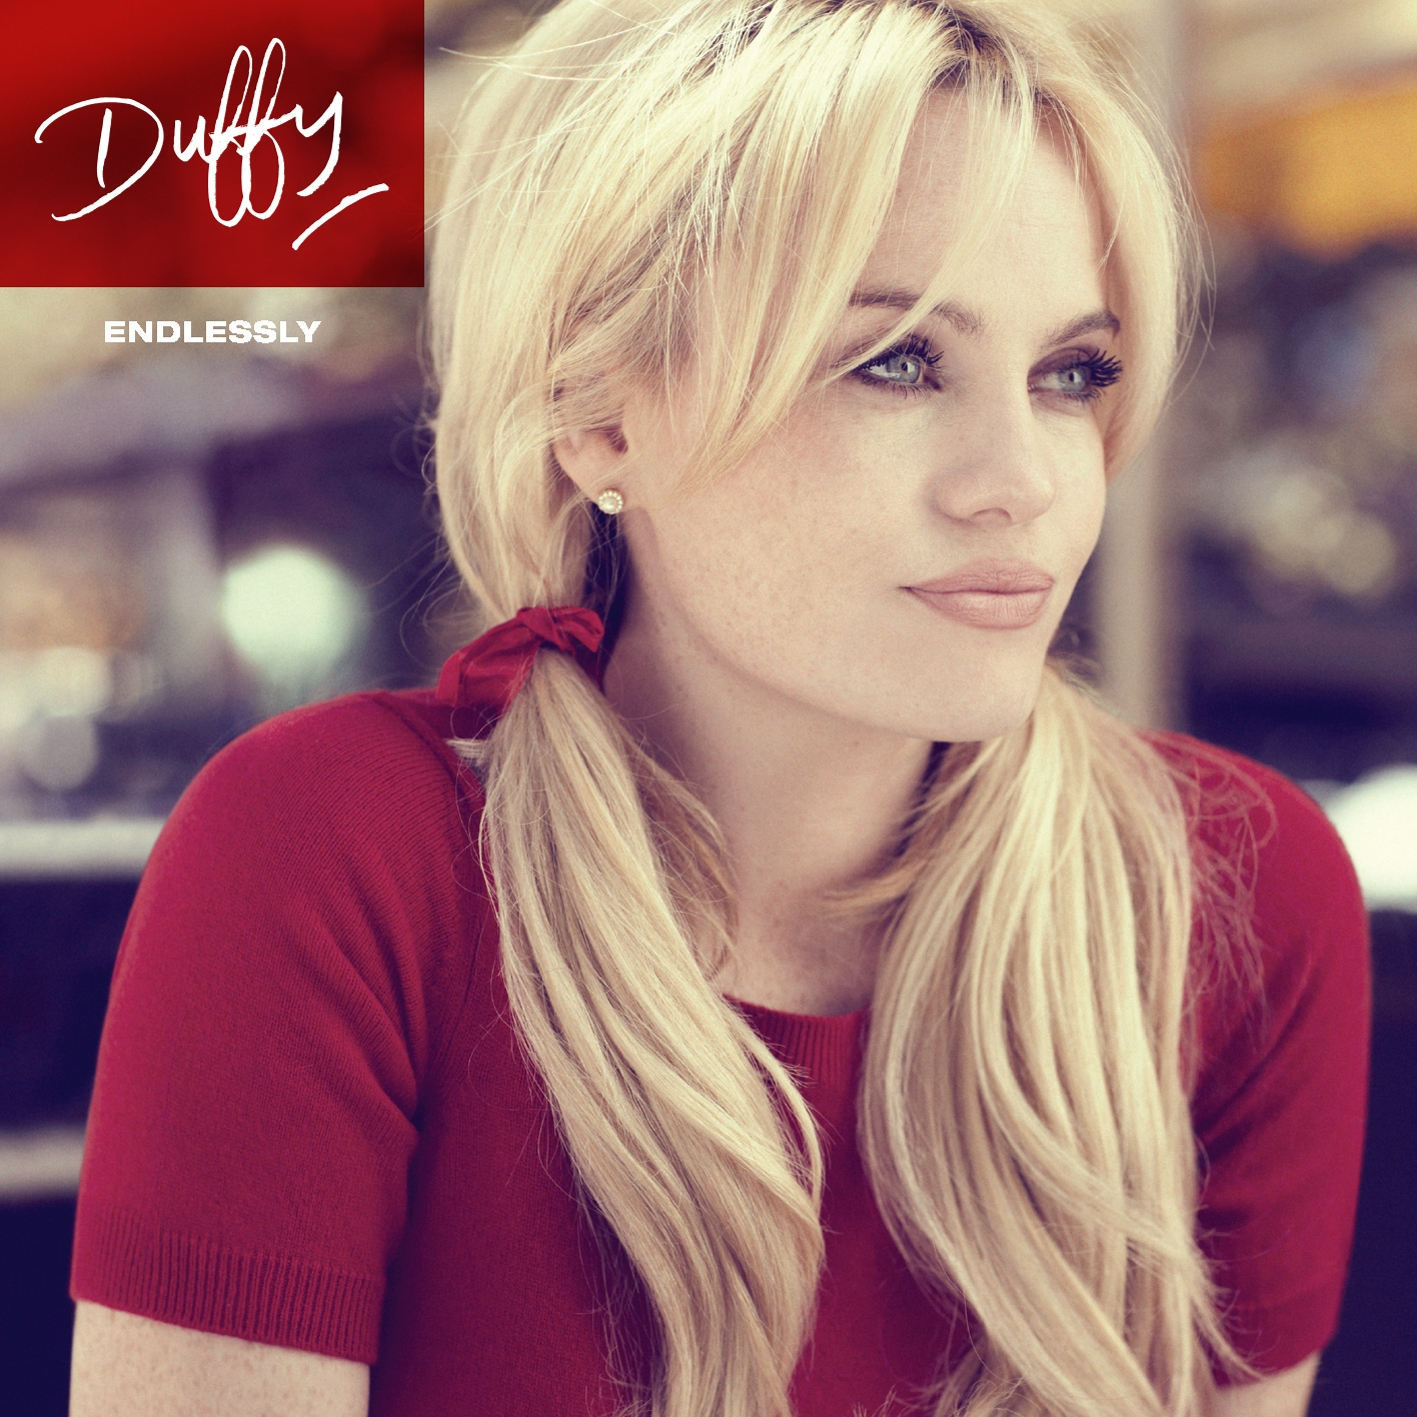 Duffy, Endlessly